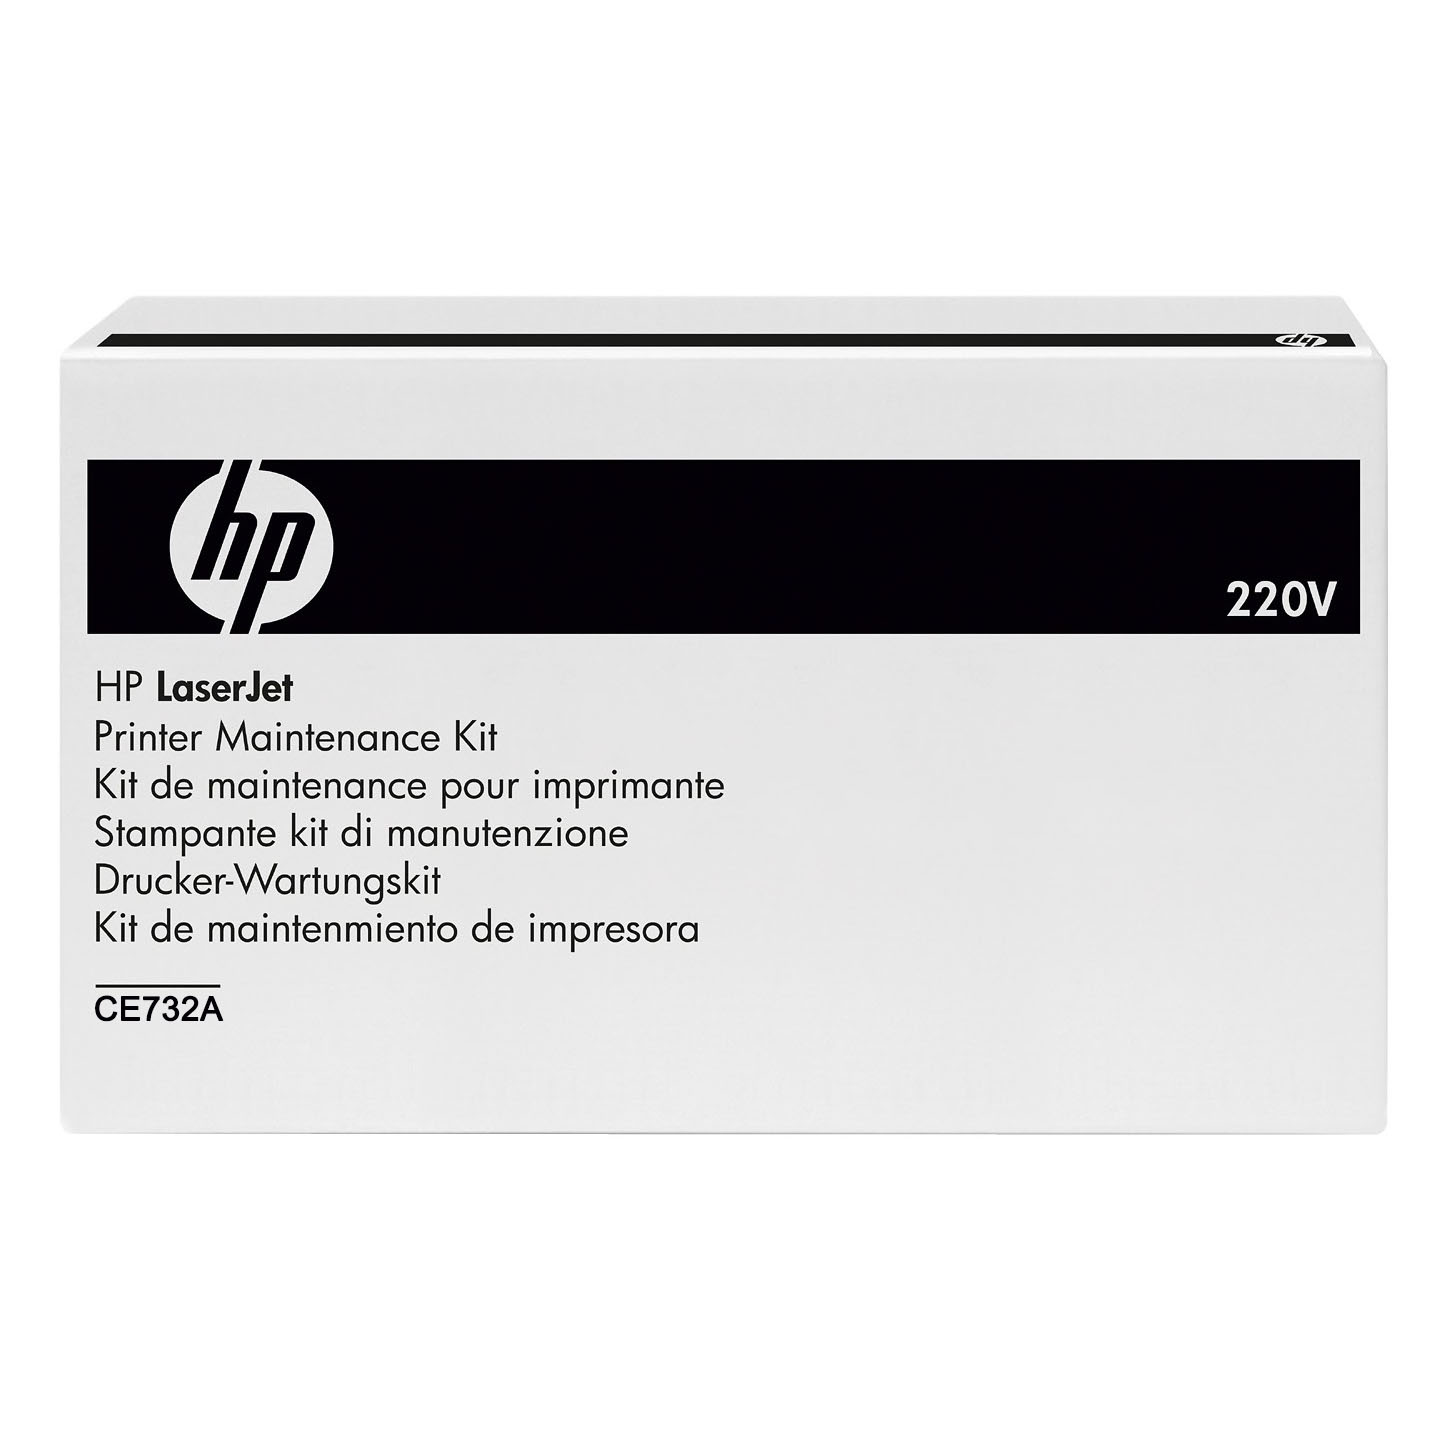 Original HP CE732A Maintenance Kit (CE732A)